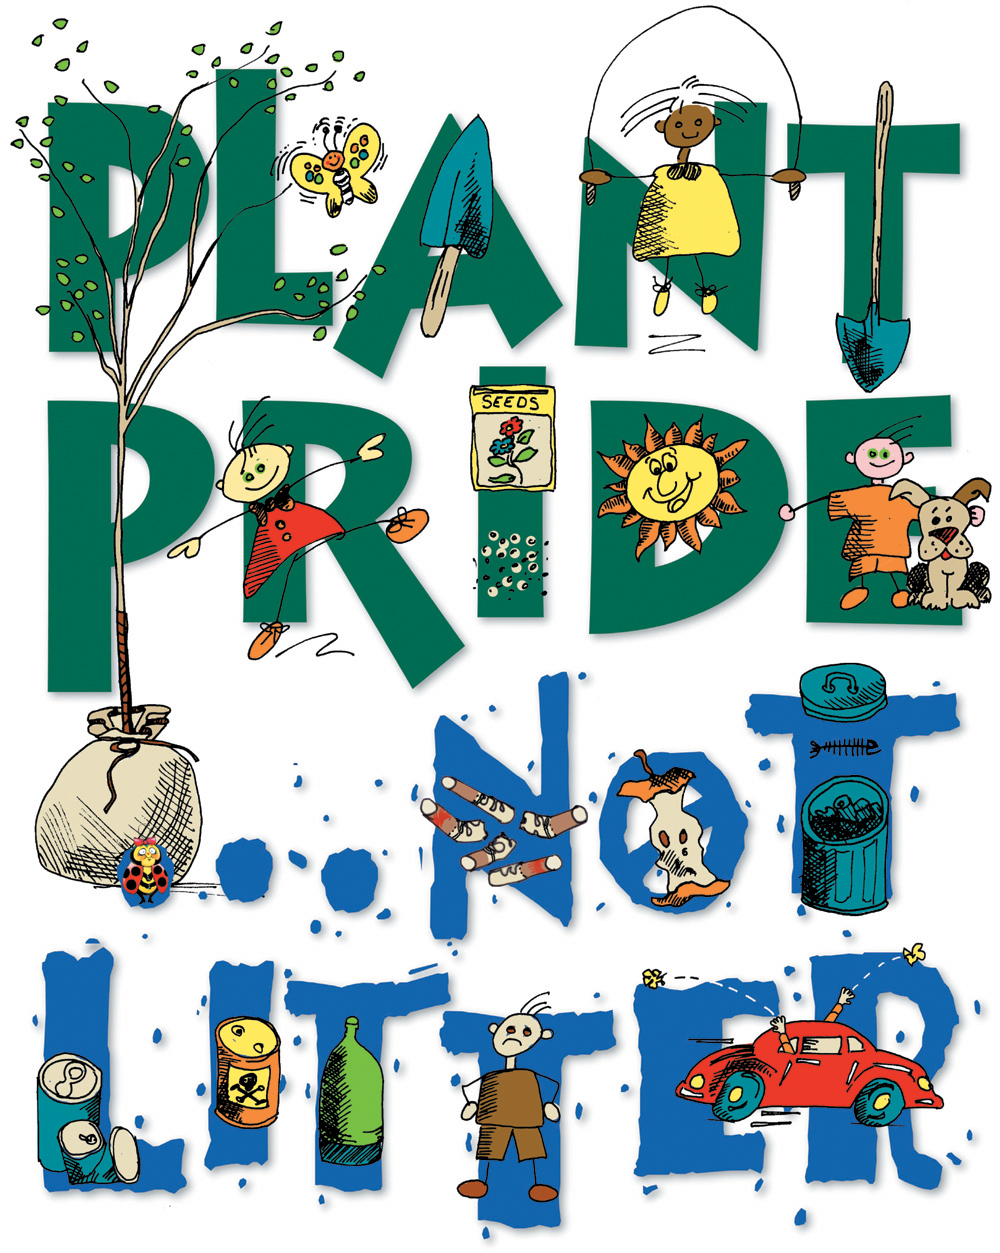 Plant pride, not litter